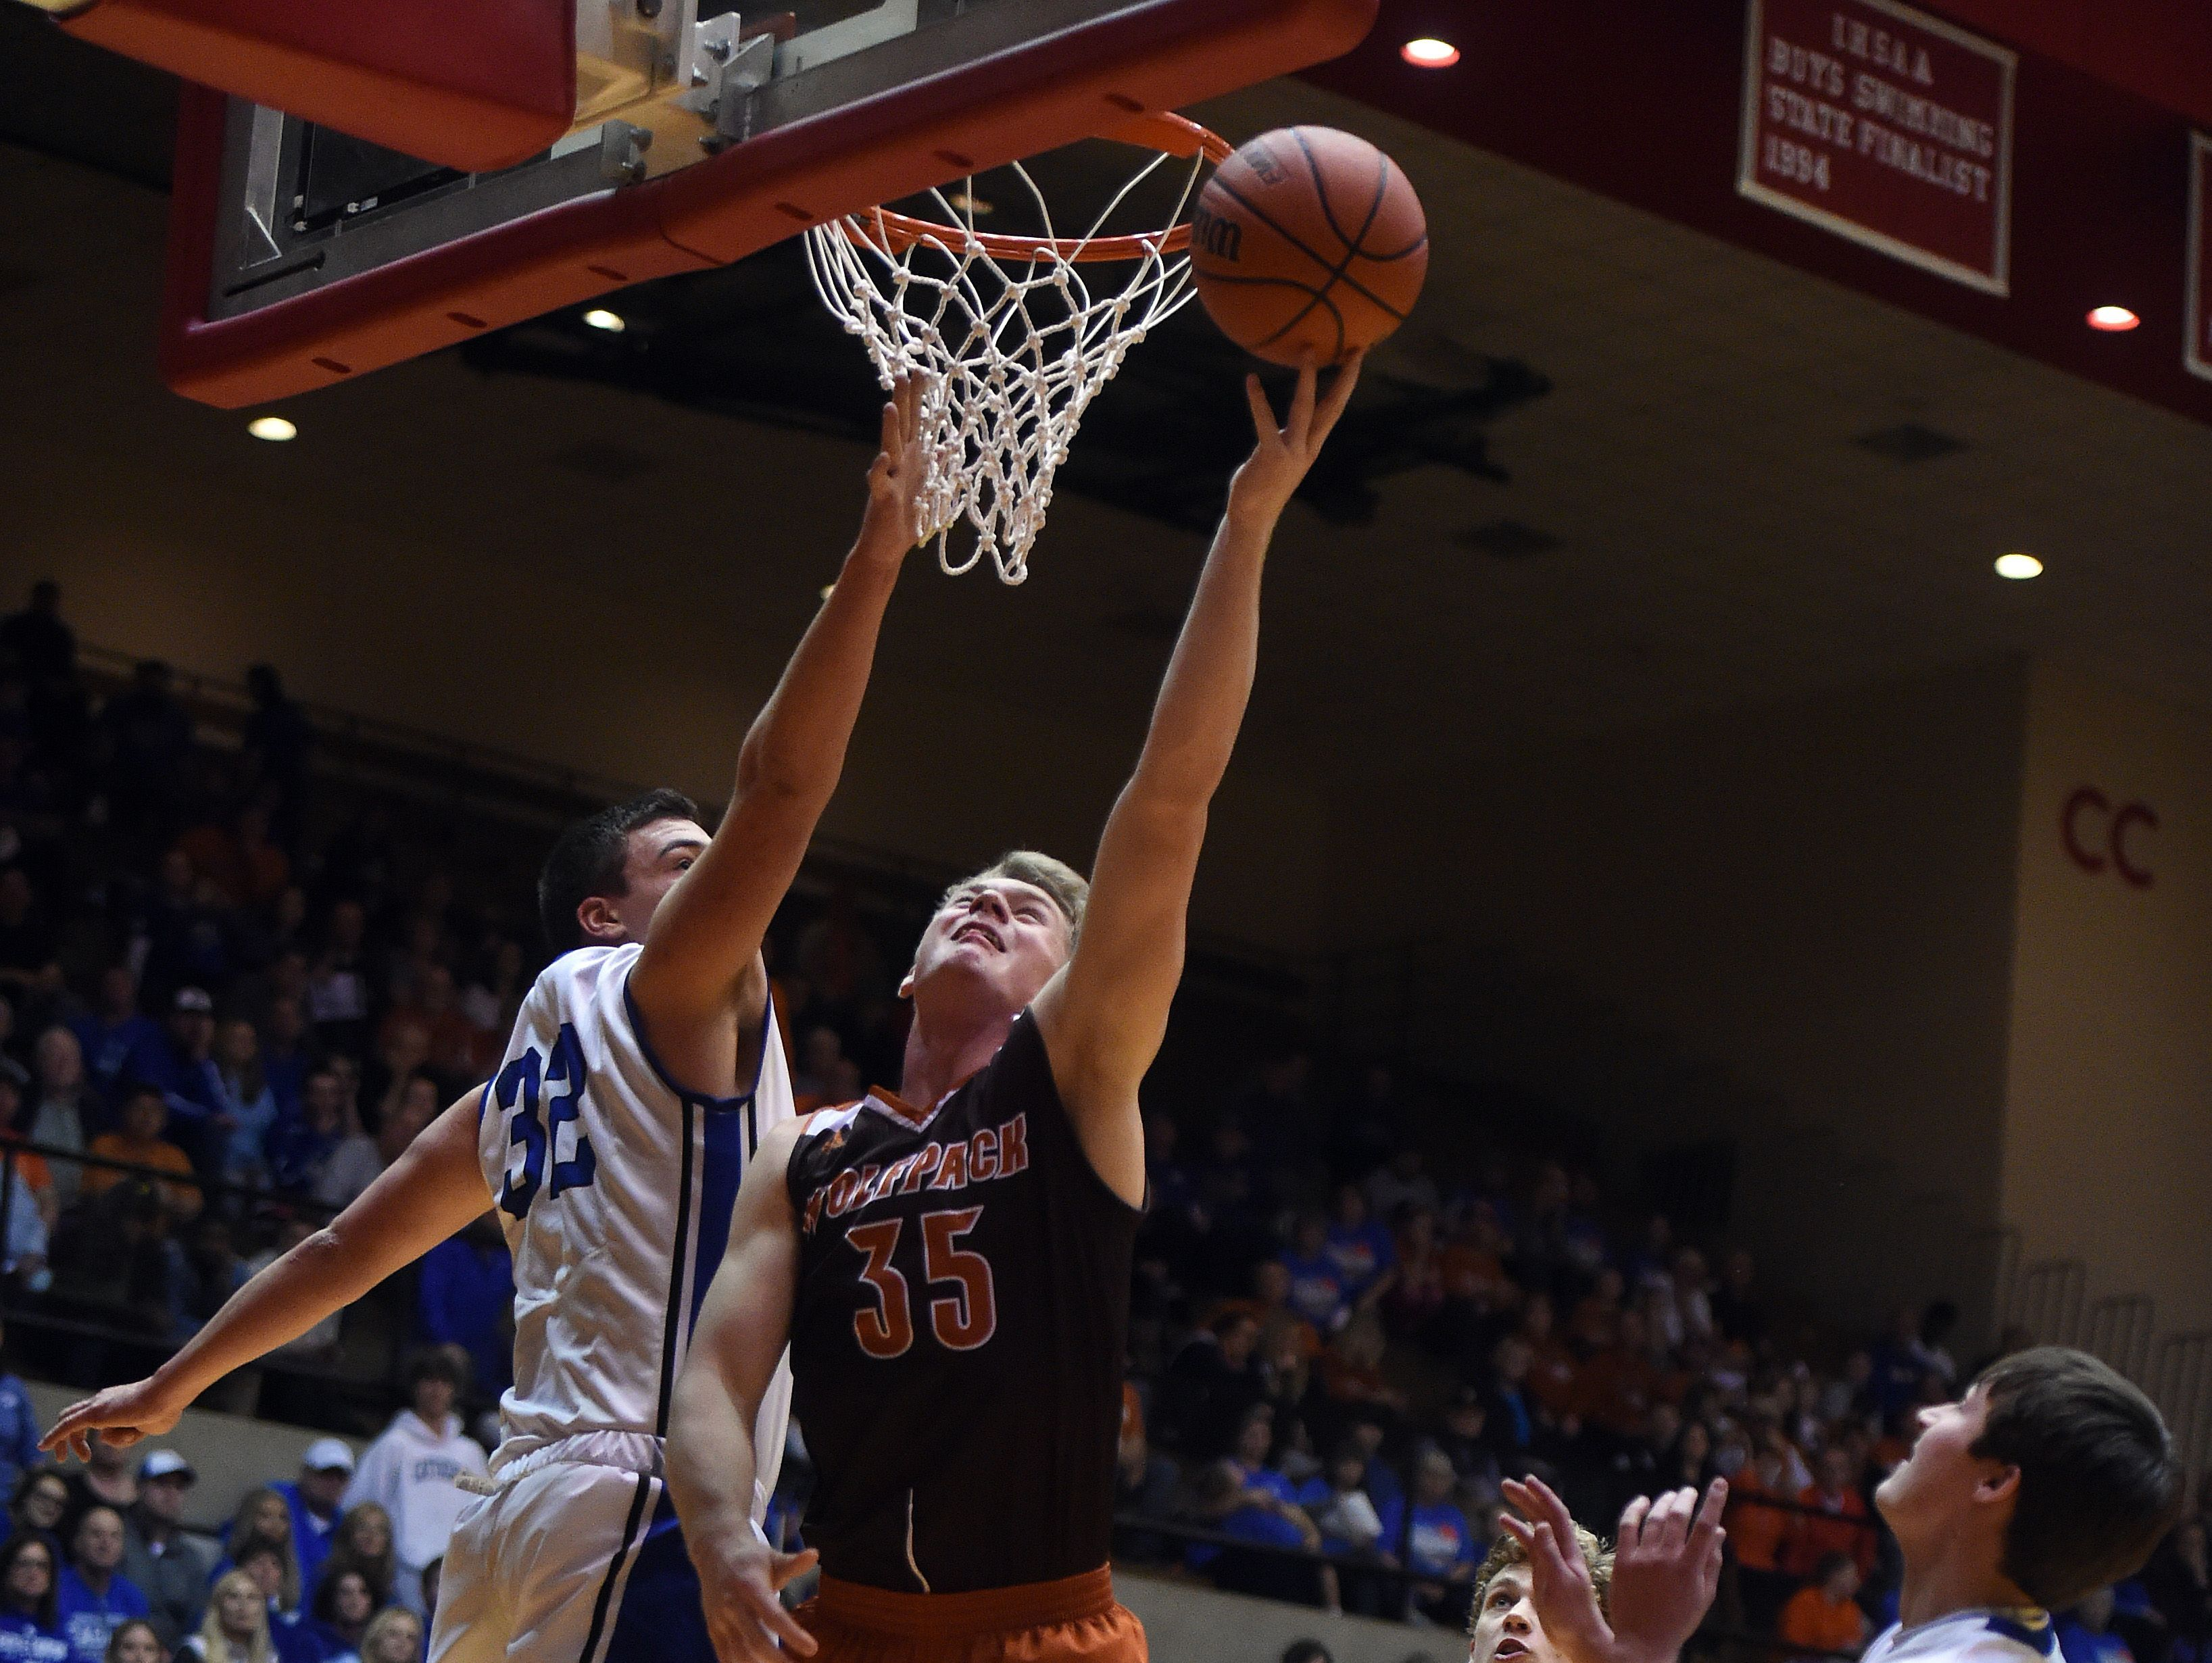 Crawford County's Matthew Dearborn puts the ball up against Heritage Christian's Zack Meus Saturday, March 18, 2017 during the Class 2A basketball semi-state championship in the Tiernan Center at Richmond.